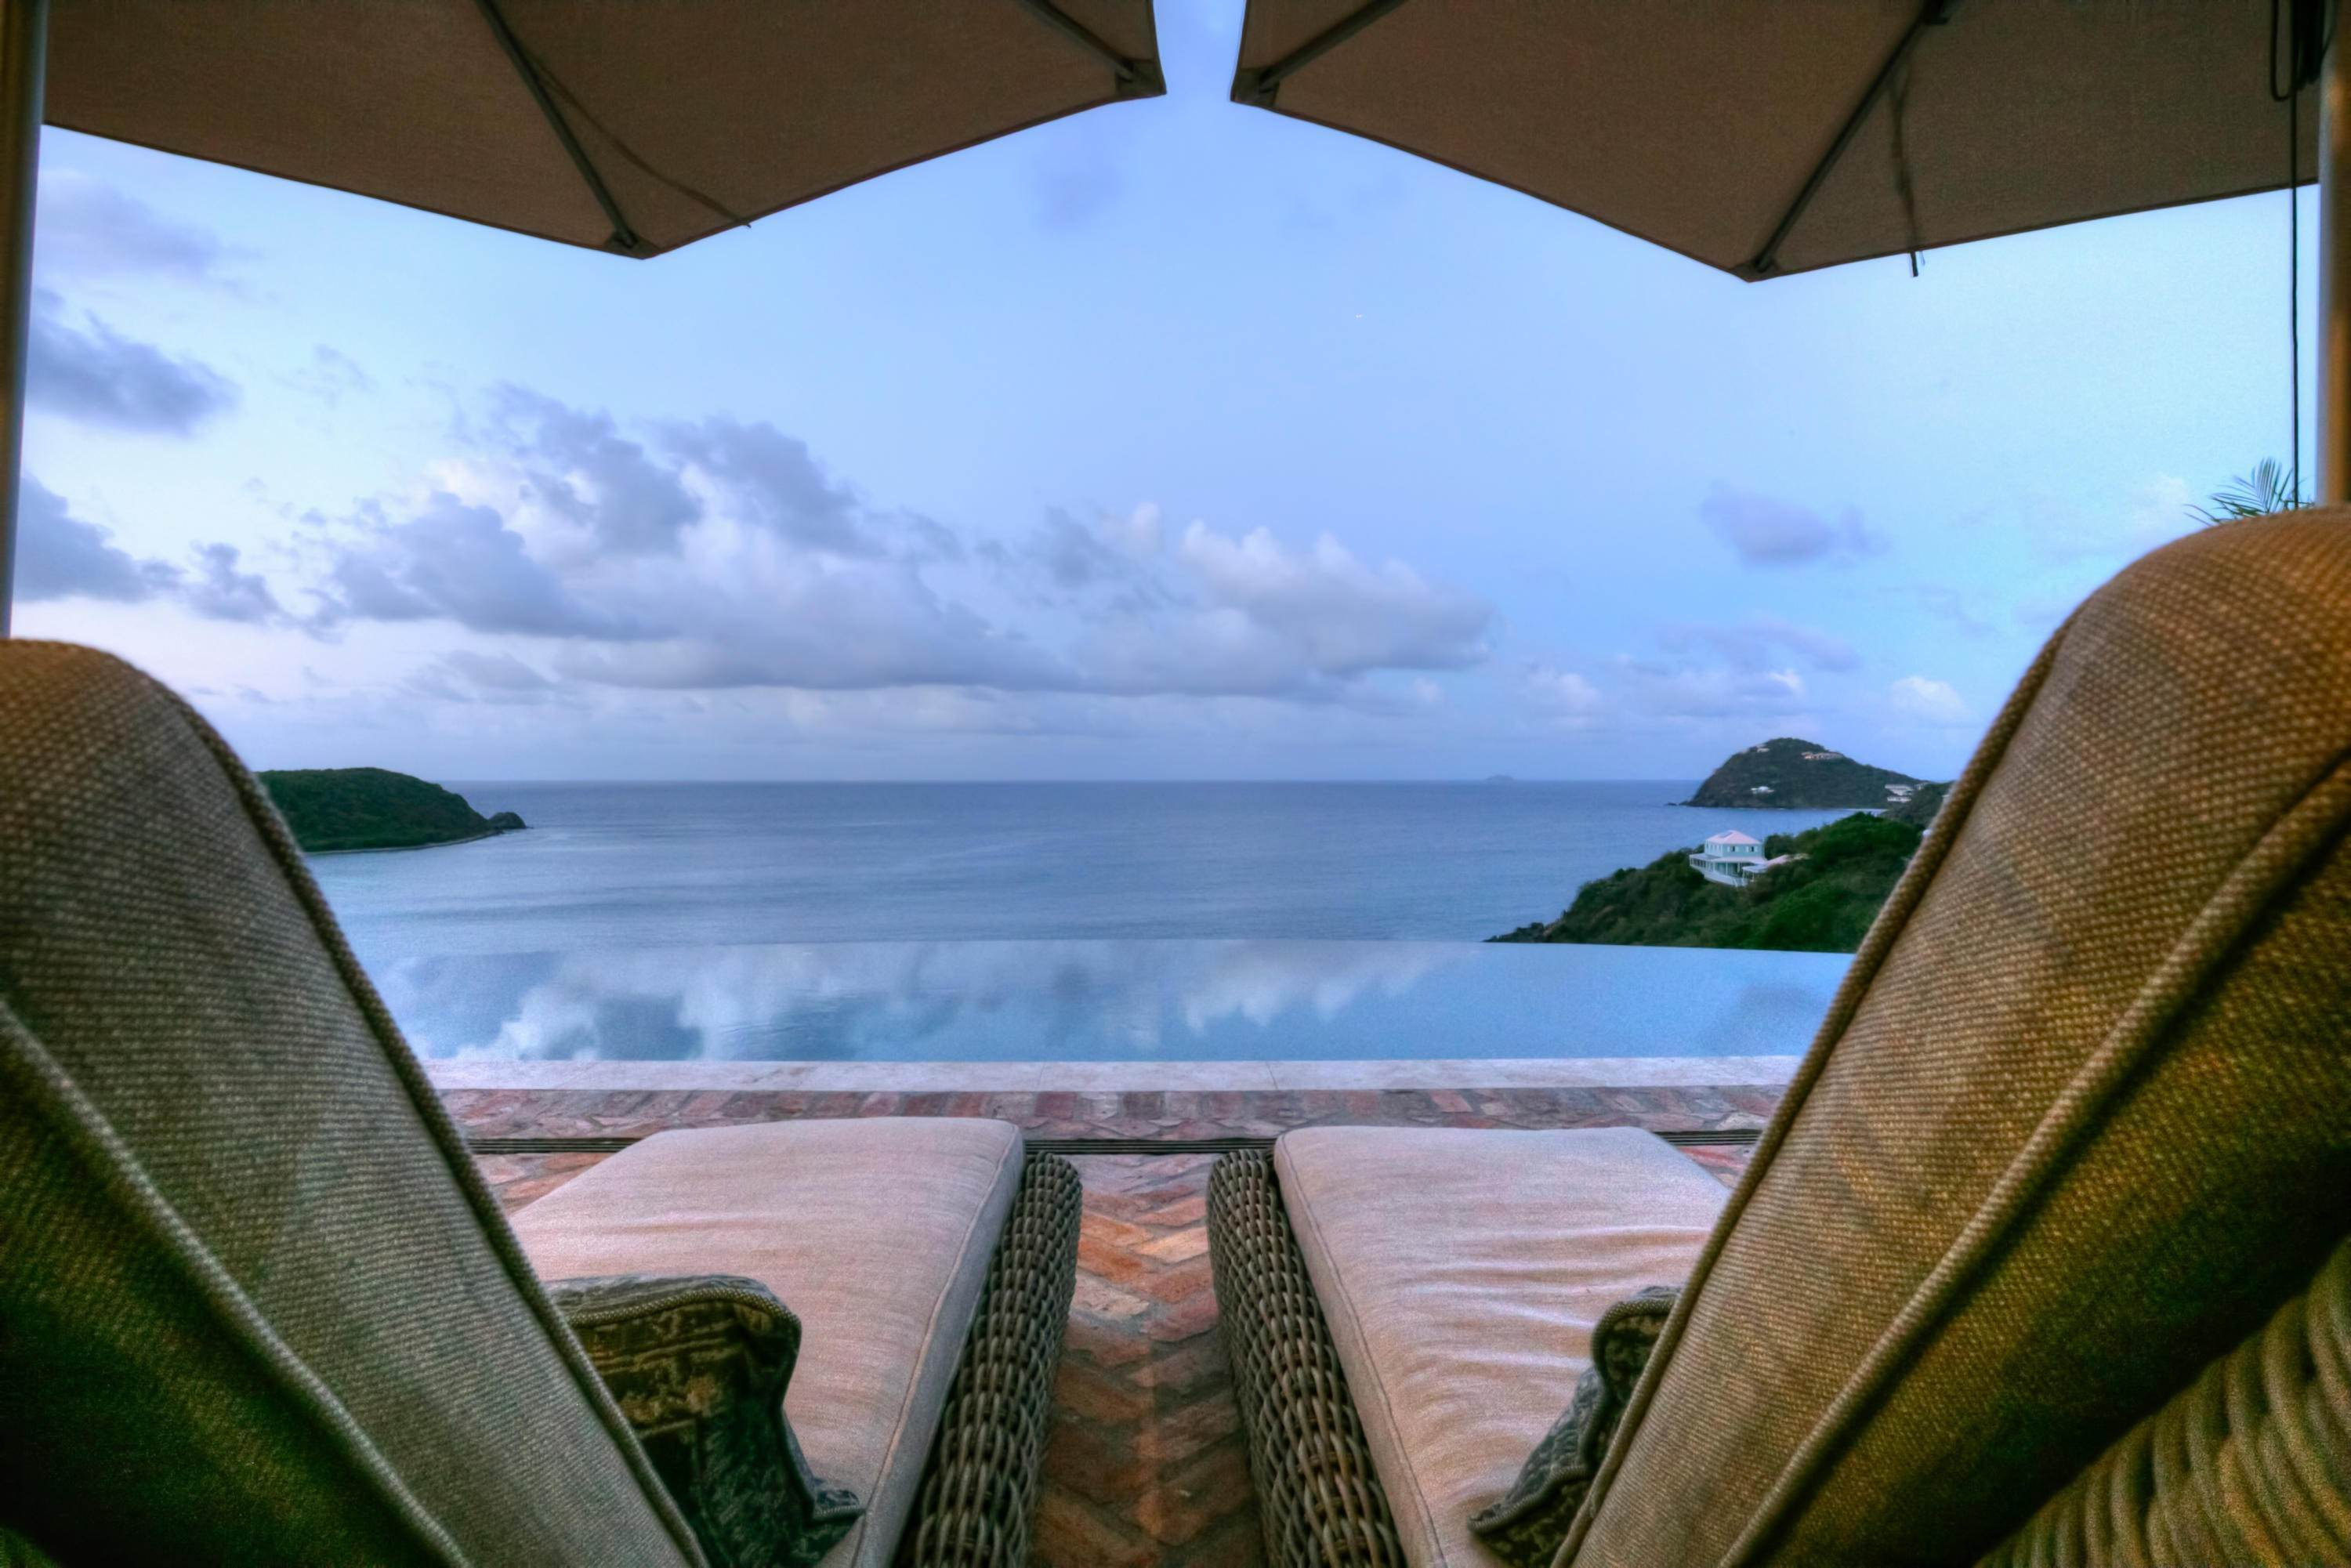 7. Single Family Home for Sale at 15A-7-15 Rendezvous & Ditleff Cruz Bay St John, Virgin Islands,00830 United States Virgin Islands